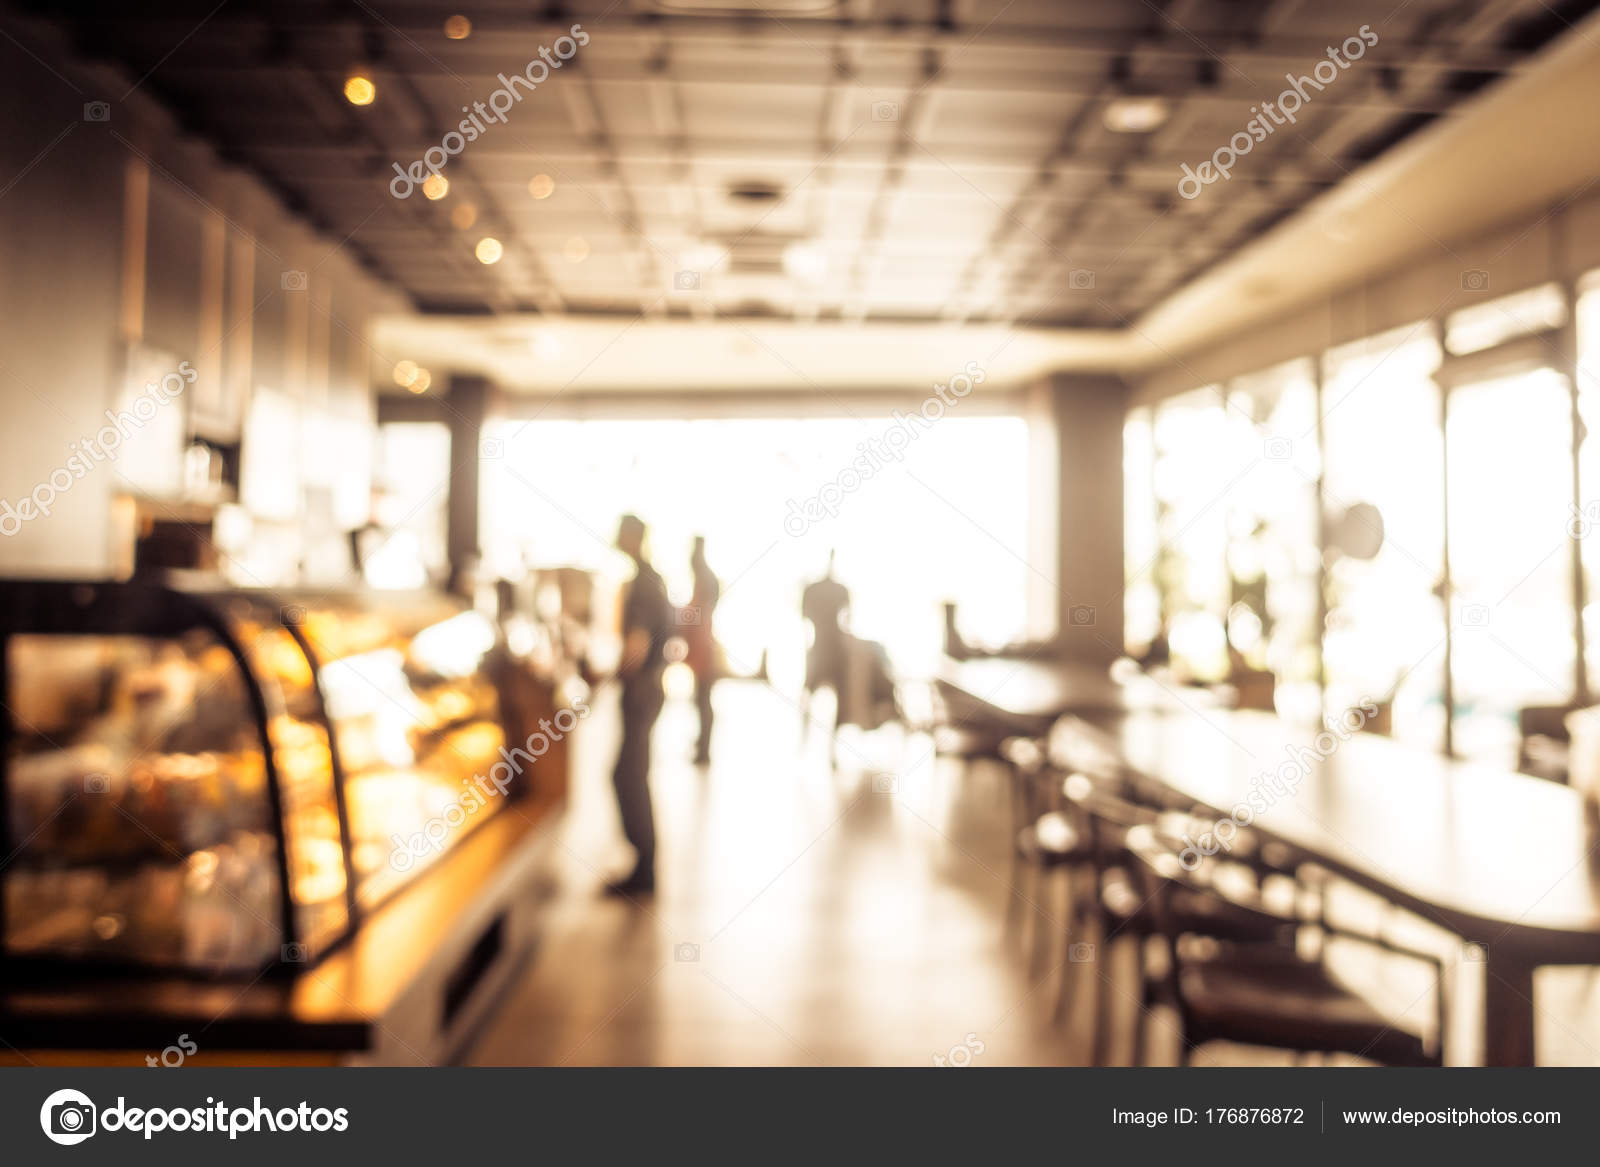 Abstract Blur Coffee Shop Cafe Restaurant Interior Background Vintage Filter Stock Photo C Mrsiraphol 176876872